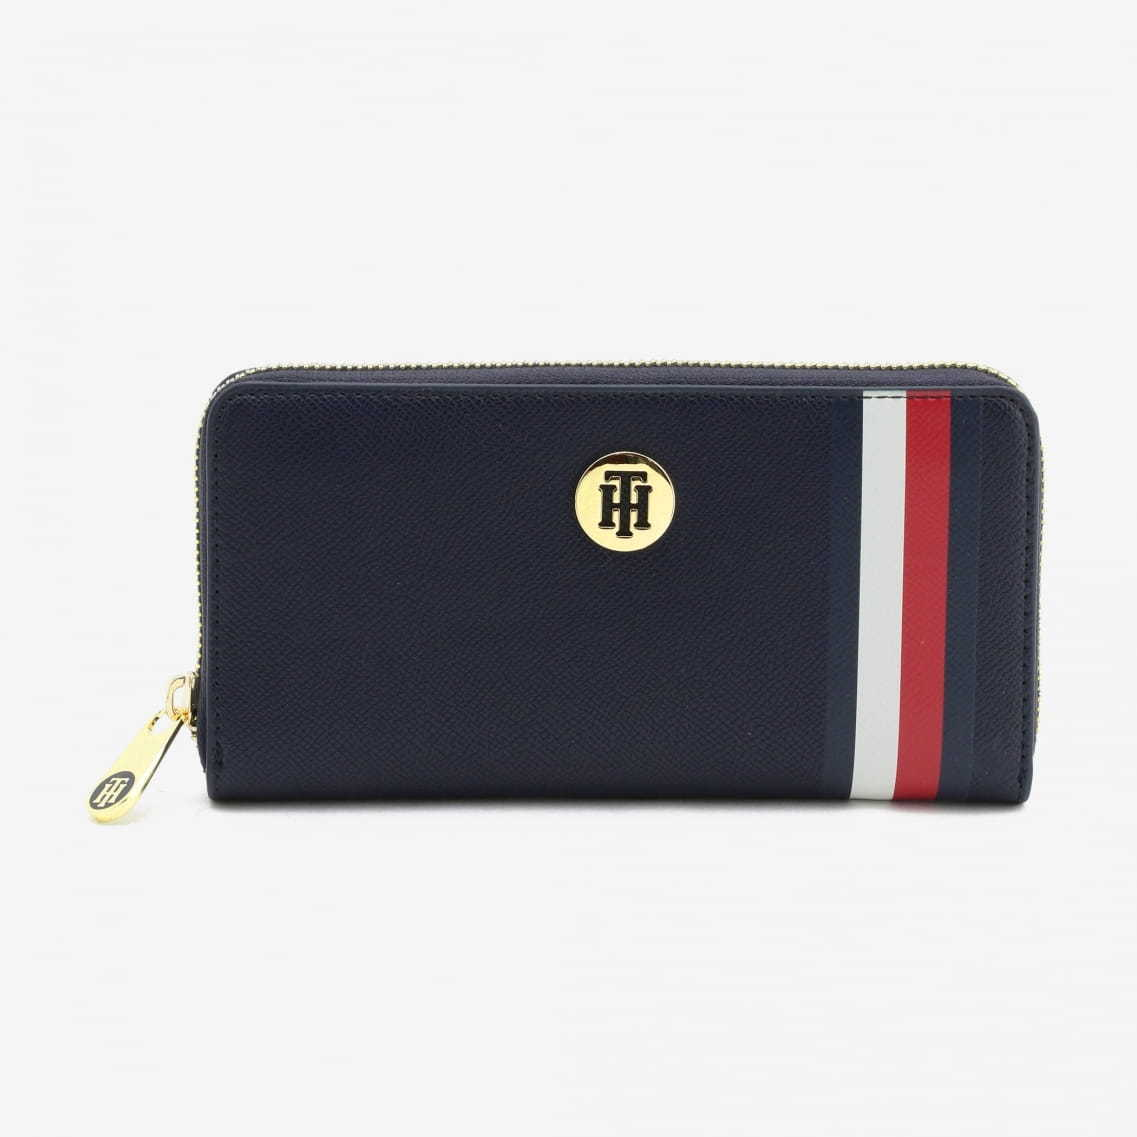 shop tommy hilfiger wallets & card holders